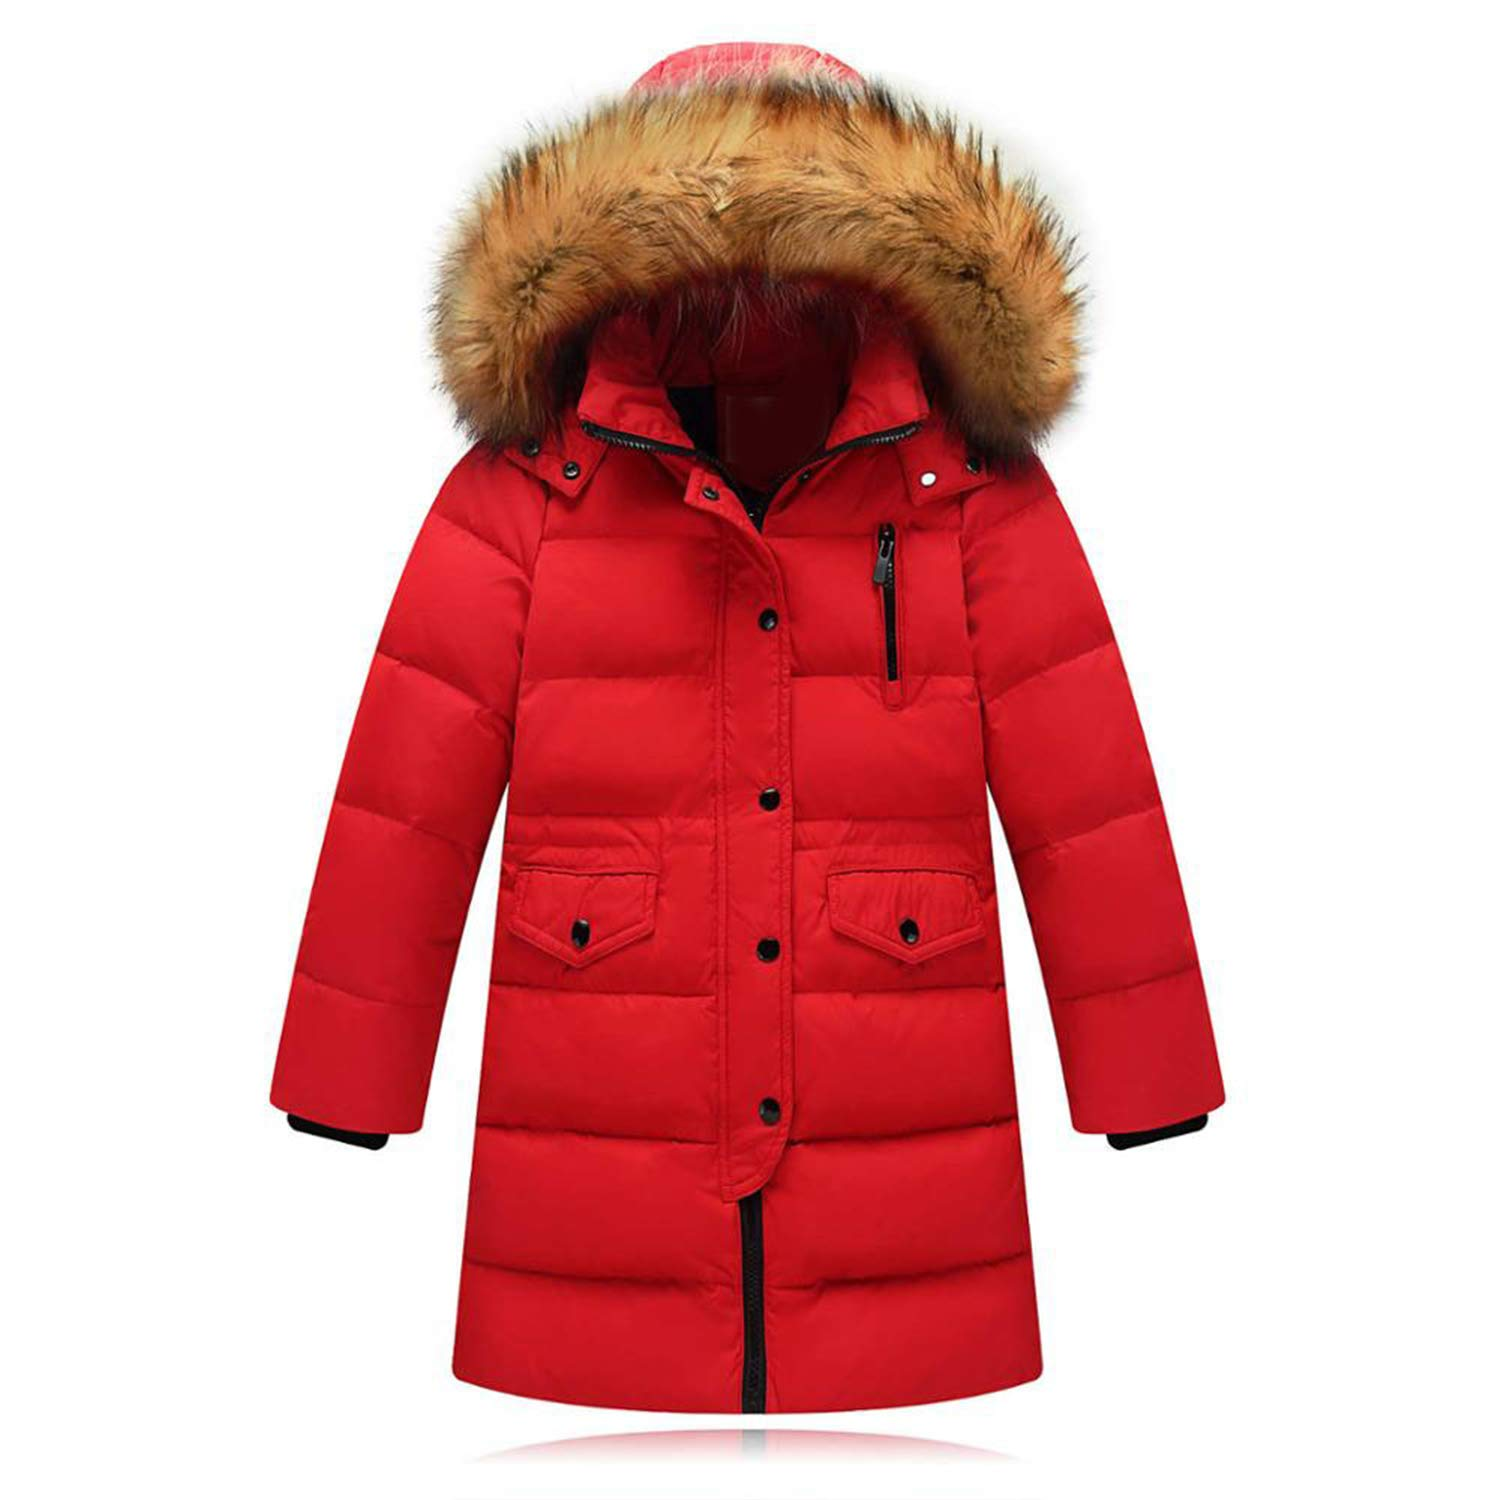 aafcc8851298 Functionaryb Children Winter Duck Down Jackets Girls Clothing Thickening Warm  Boys Long Big Fur Hooded Outerwear Coats Kids Parka  Amazon.co.uk  Clothing